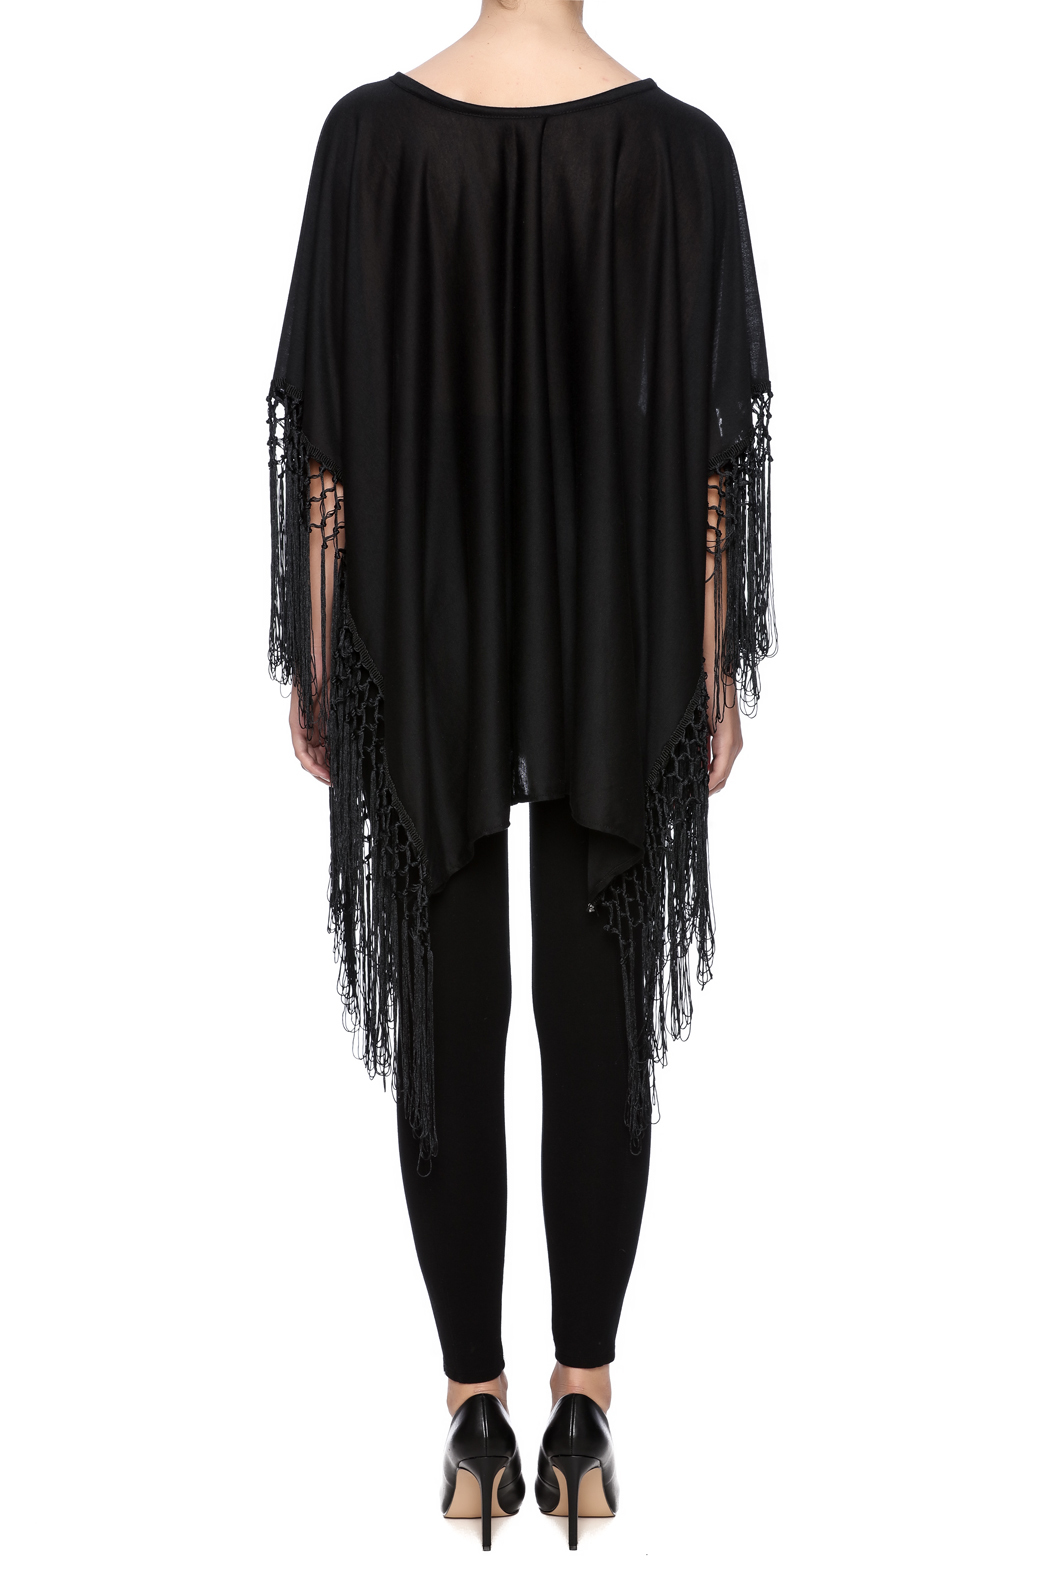 Two's Company Fringed T-Shirt Poncho - Back Cropped Image